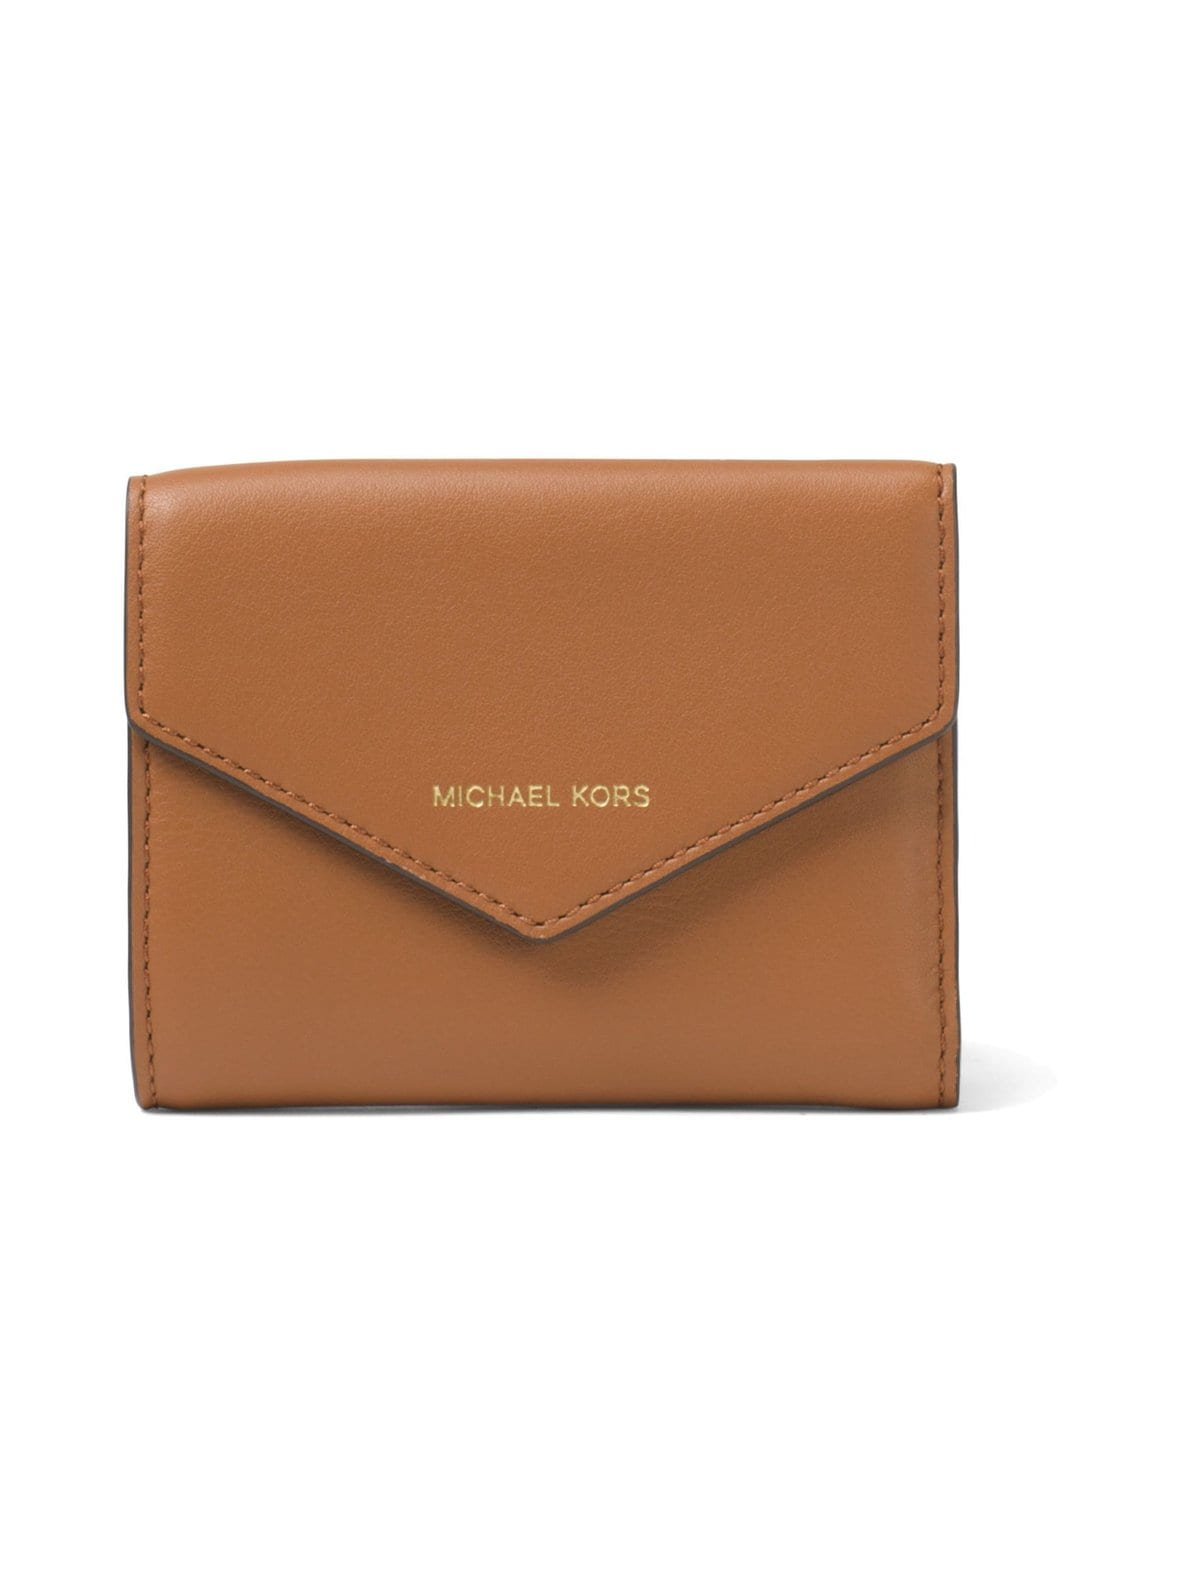 c121420ad2e2 Acorn Michael Michael Kors Jet Set Small Envelope Wallet ...